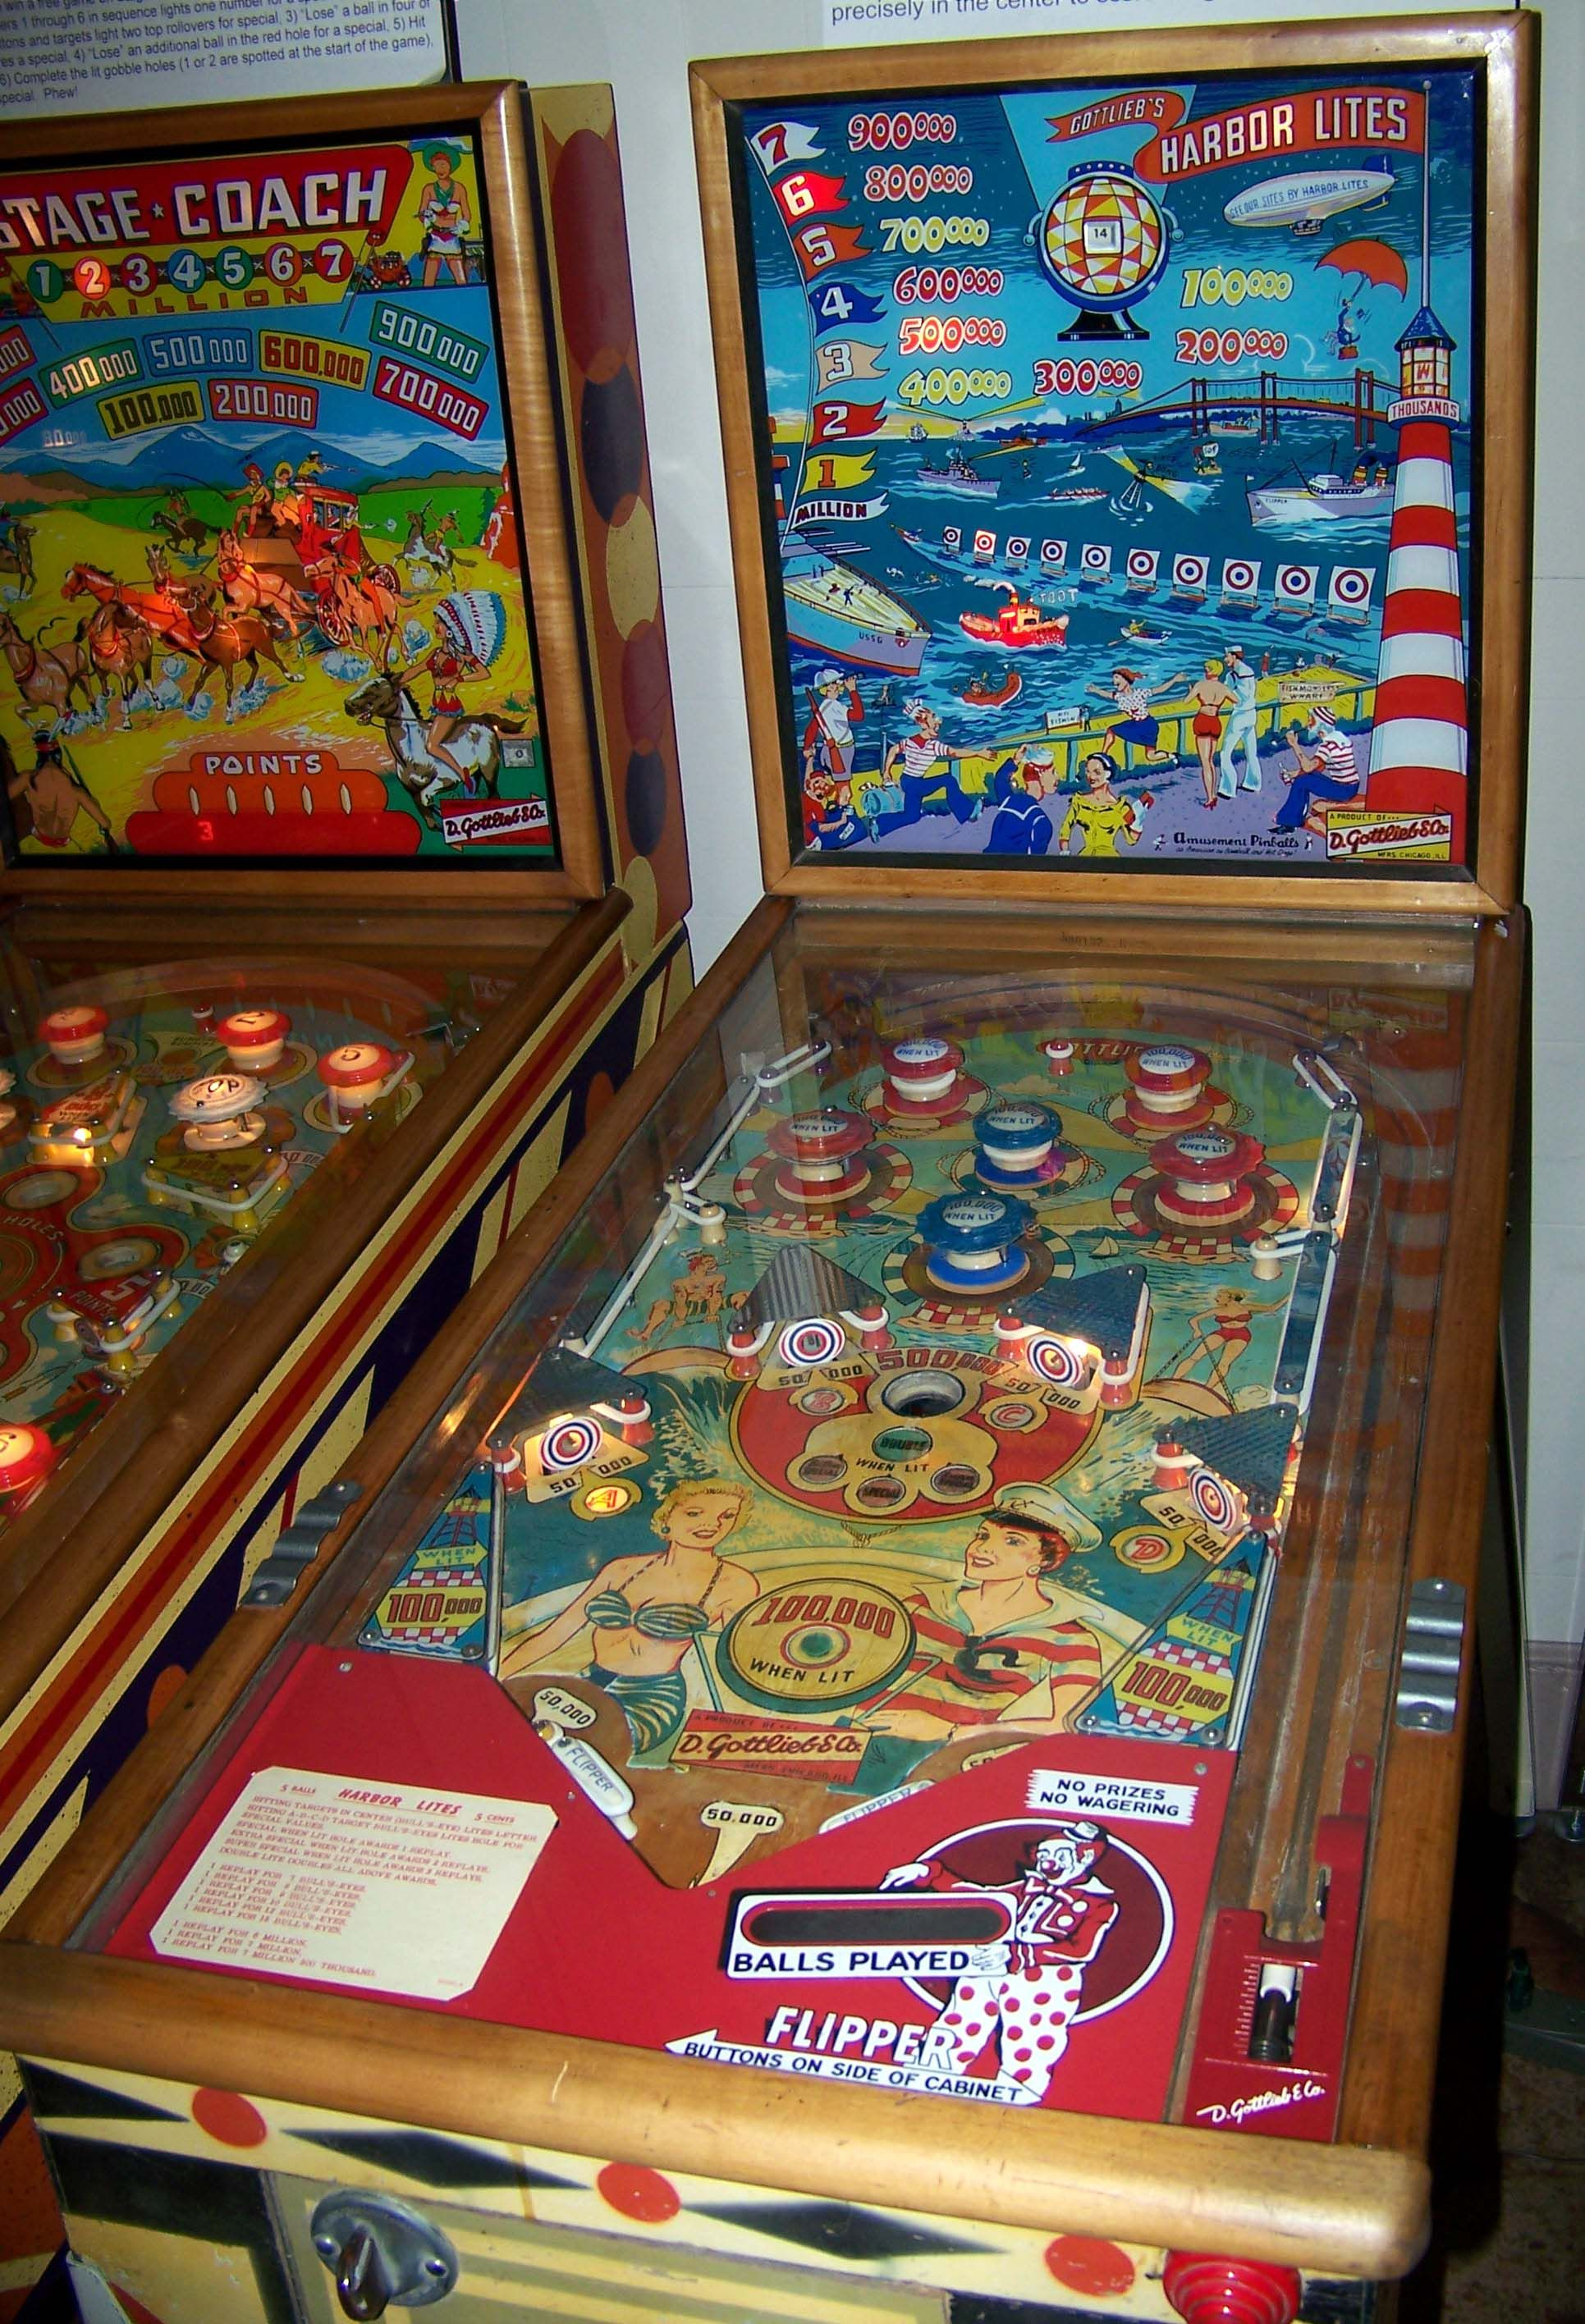 Arcade Pinball Machine Automatically Counts and Plays Music